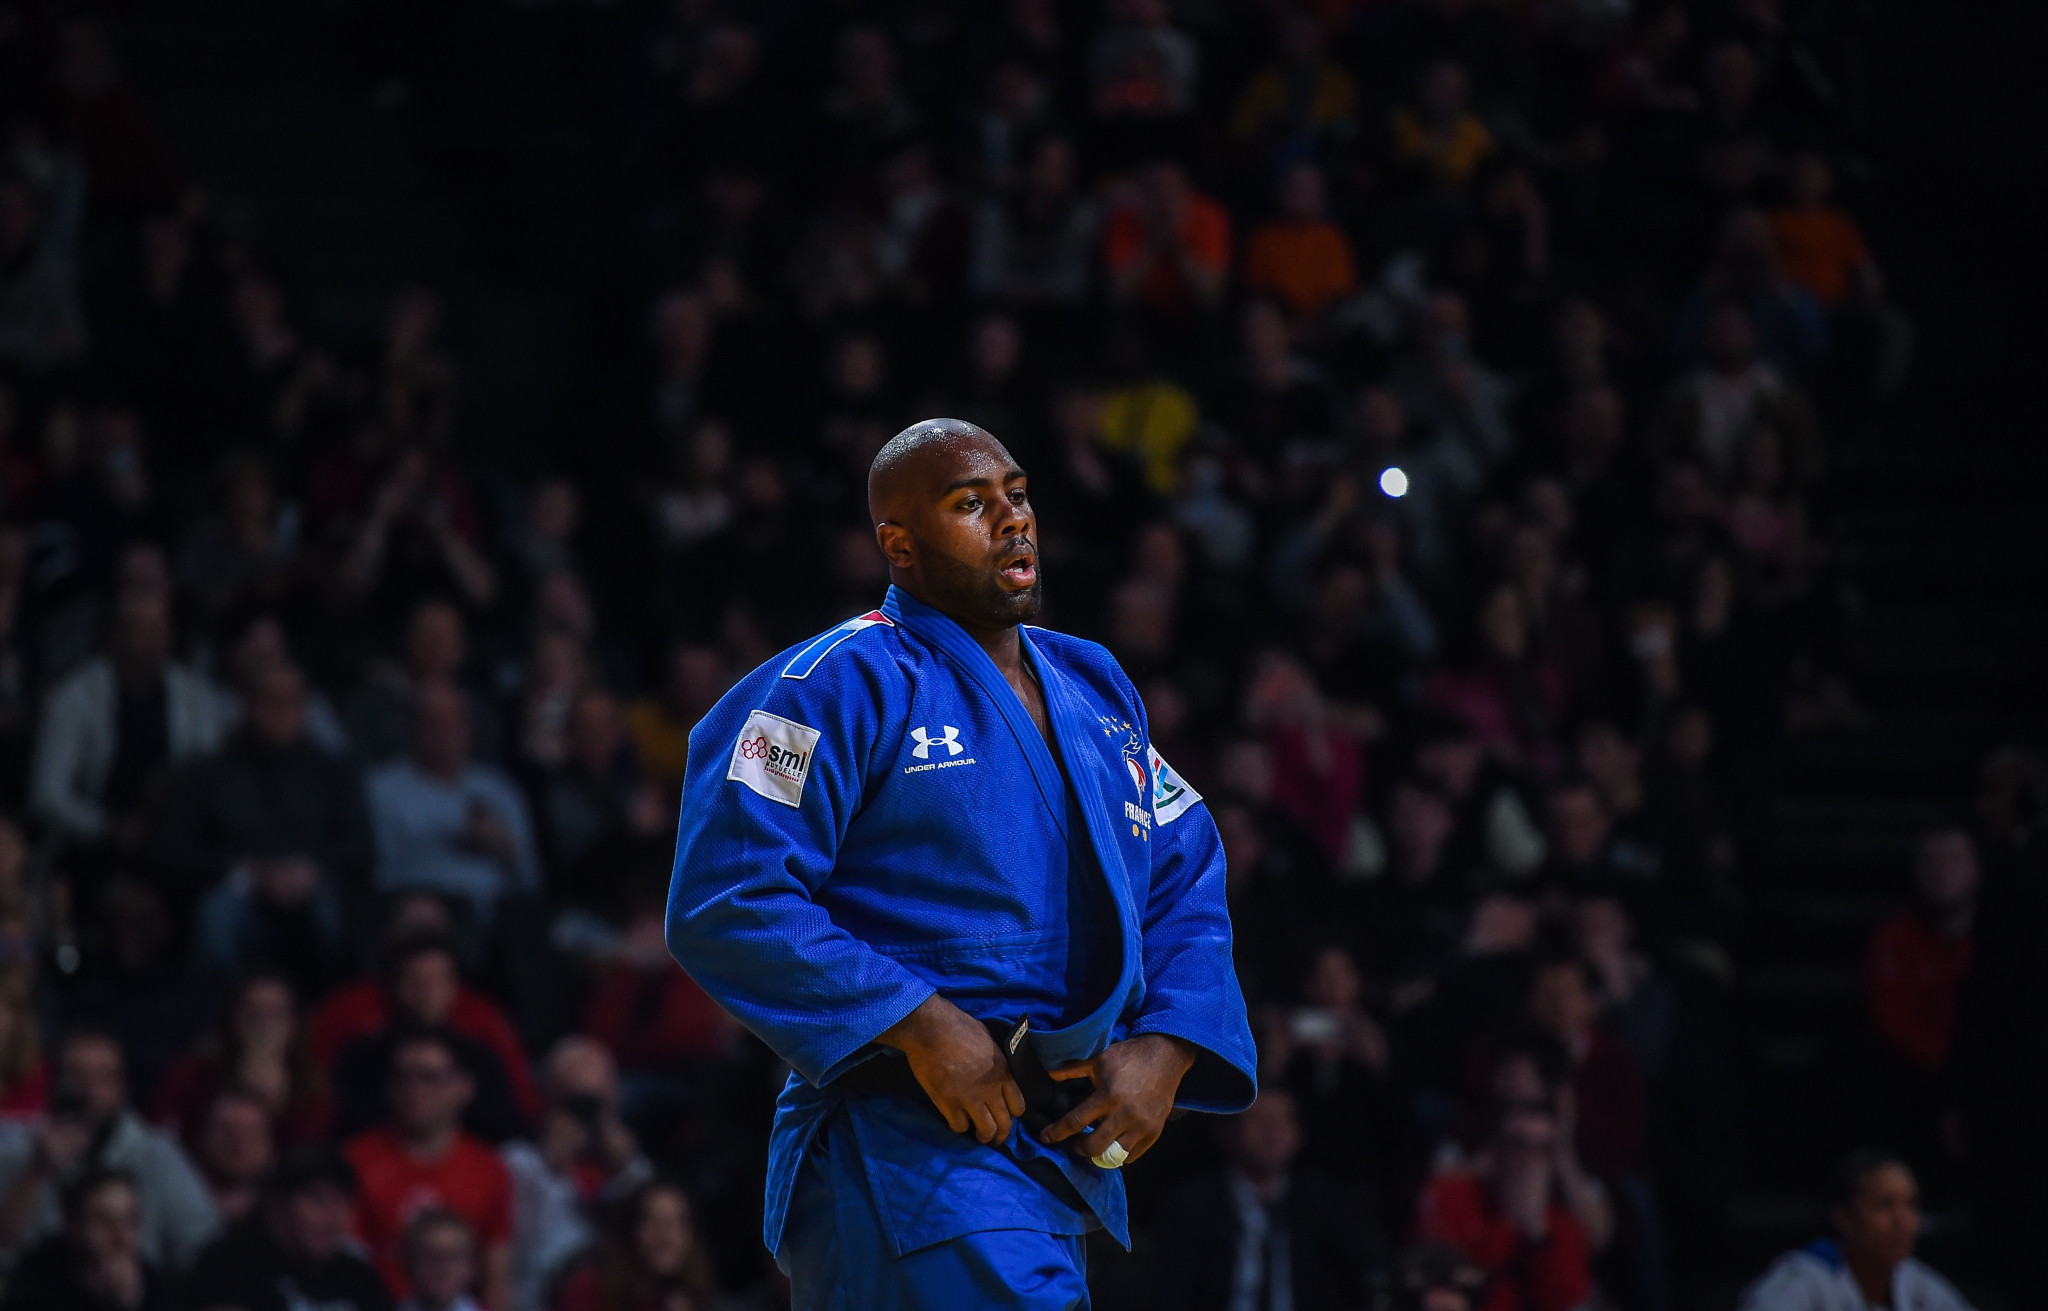 The Paris Grand Slam, where Teddy Riner suffered a surprise defeat, was one of the last IJF events held before the pandemic brought competition to a halt ©Getty Images